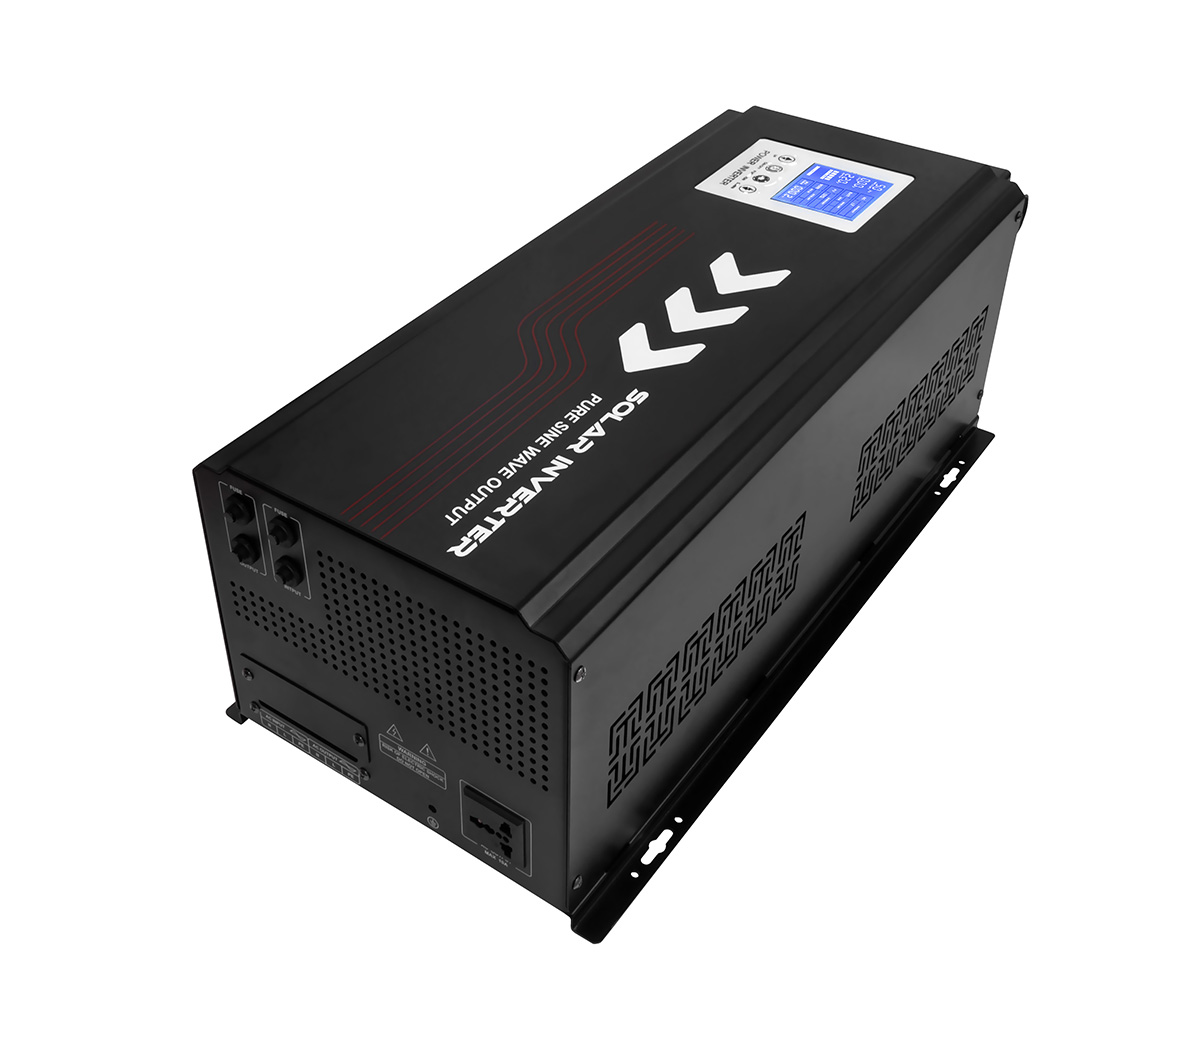 W10 solar power inverter 4kw-7kw